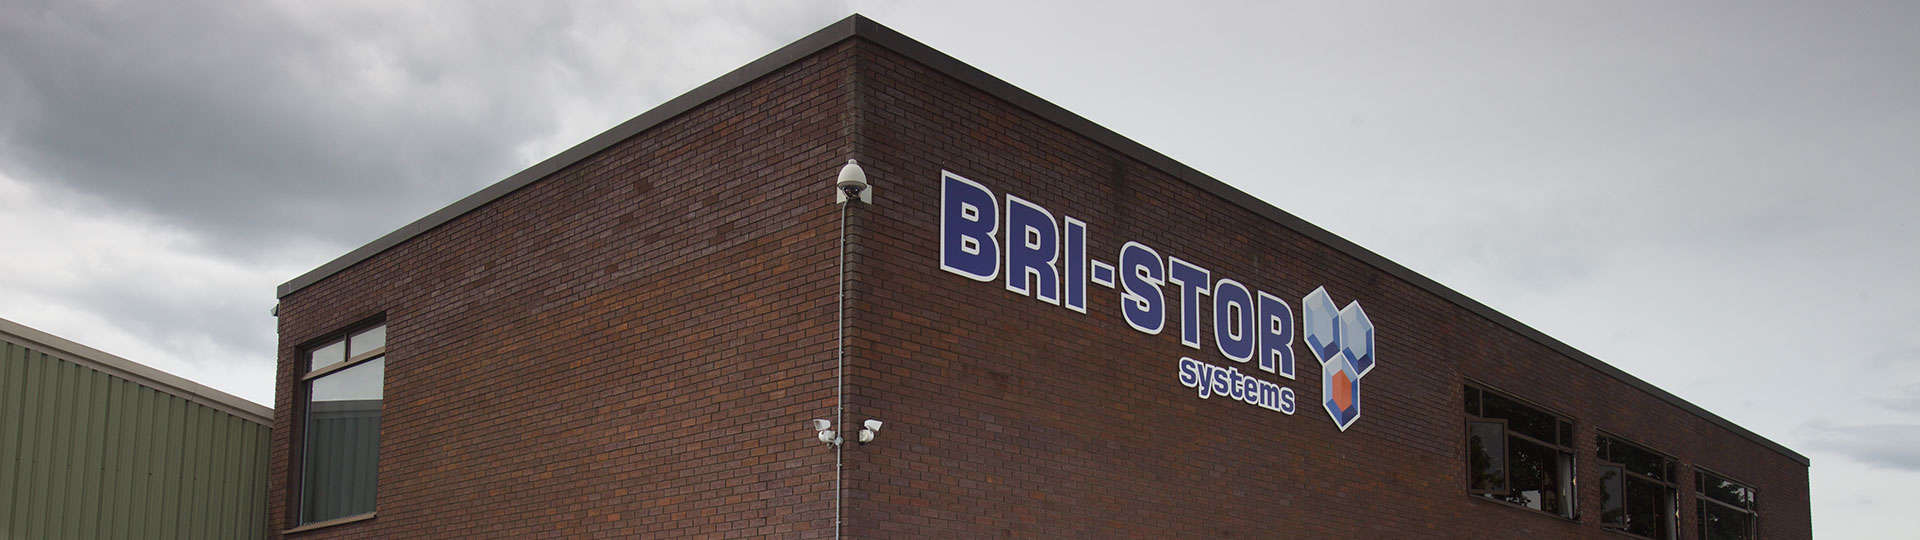 Bri-Stor Systems Factory